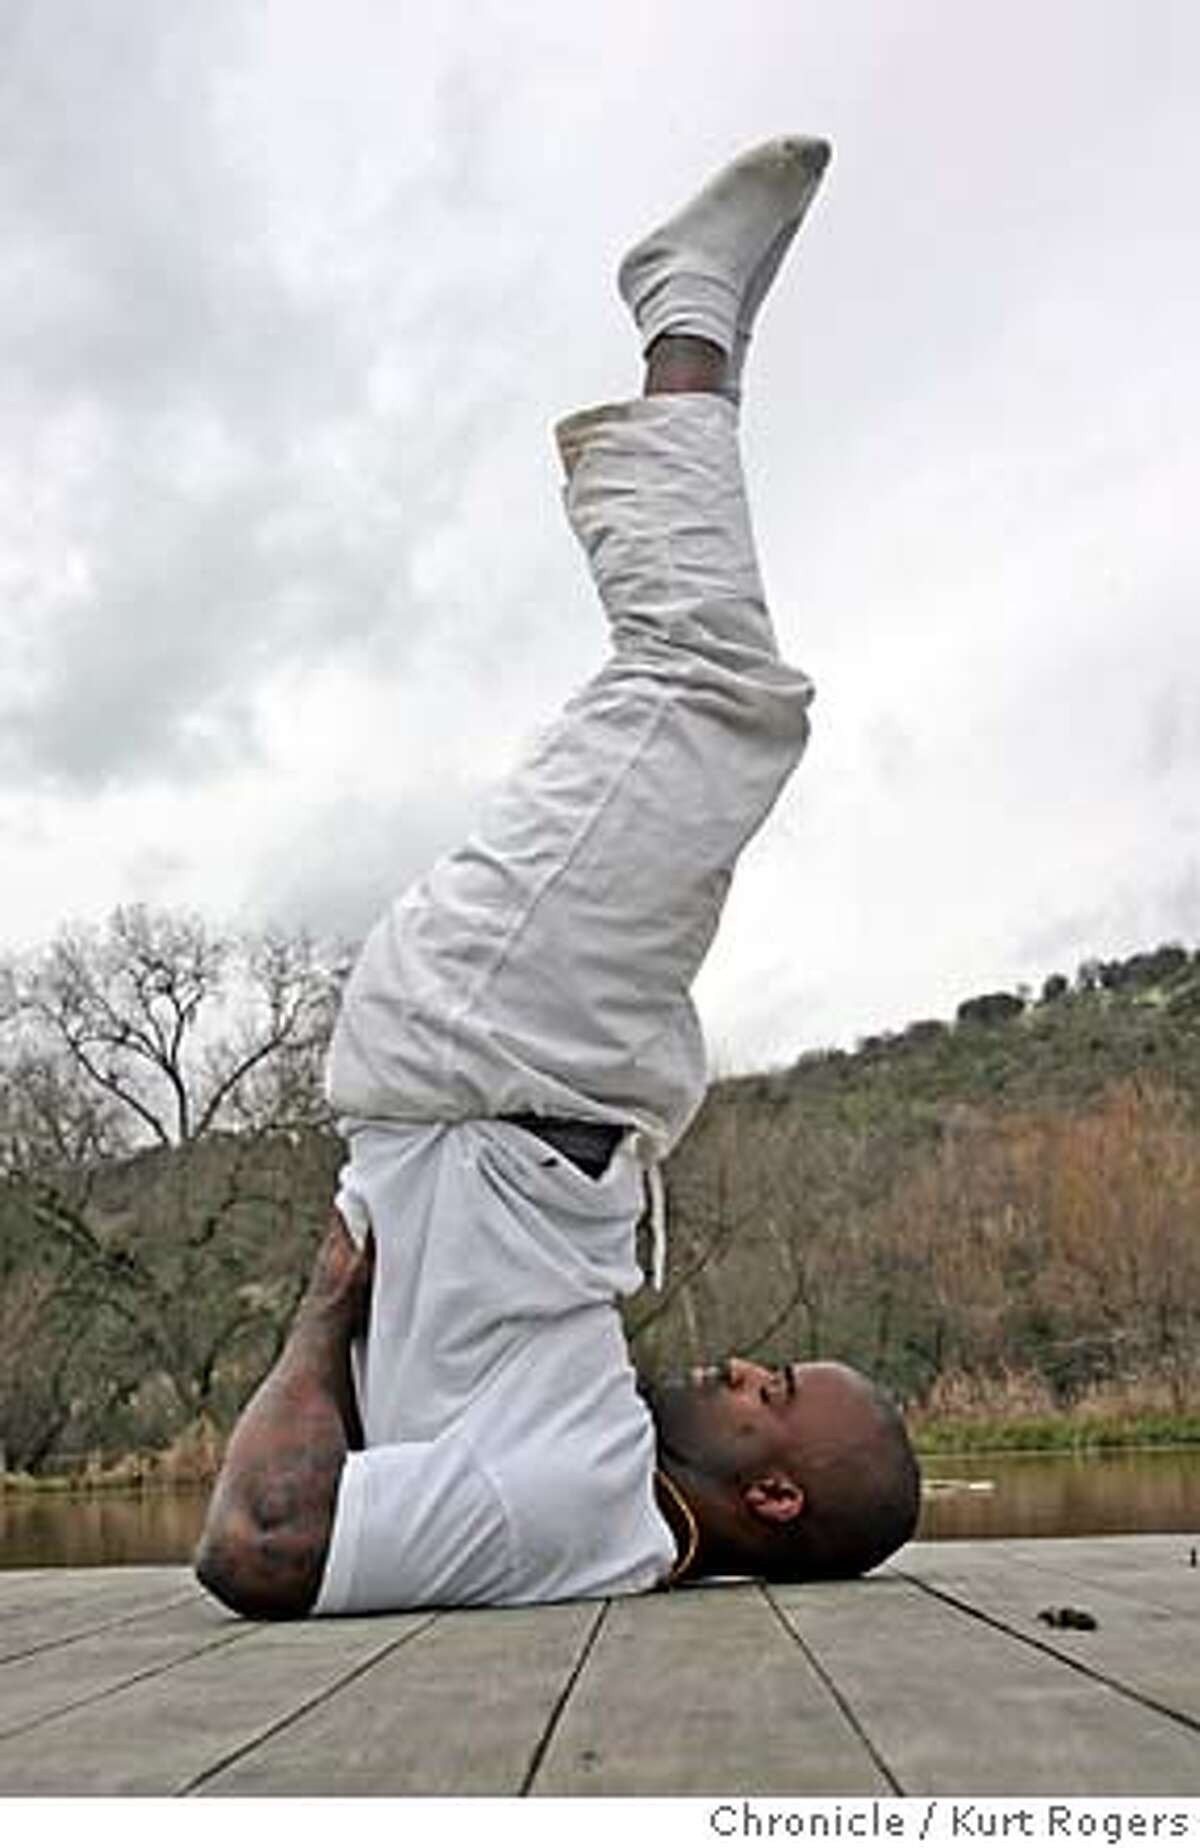 At the Sivananda Ashram Yoga Farm in Grass Valley Rick Williams works out on a dock by the lake. Ricky Williams, the Heisman Trophy winning running back who went on to become an NFL star and then quit under a cloud of substance-abuse and other issues (not necessarily bad issues), basically disappeared for at time. He turned up in Grass Valley, CA, studying holistic therapy and such. Then he tried to come back to the NFL again; then he ended up playing in the Canadian Football League. He's now returned to Grass Valley TUESDAY, FEBRUARY 27, 2007 KURT ROGERS/THE CHRONICLE GRASS VALLEY THE CHRONICLE SFC WILLIAMS_0089_kr.jpg MANDATORY CREDIT FOR PHOTOG AND SF CHRONICLE / NO SALES-MAGS OUT